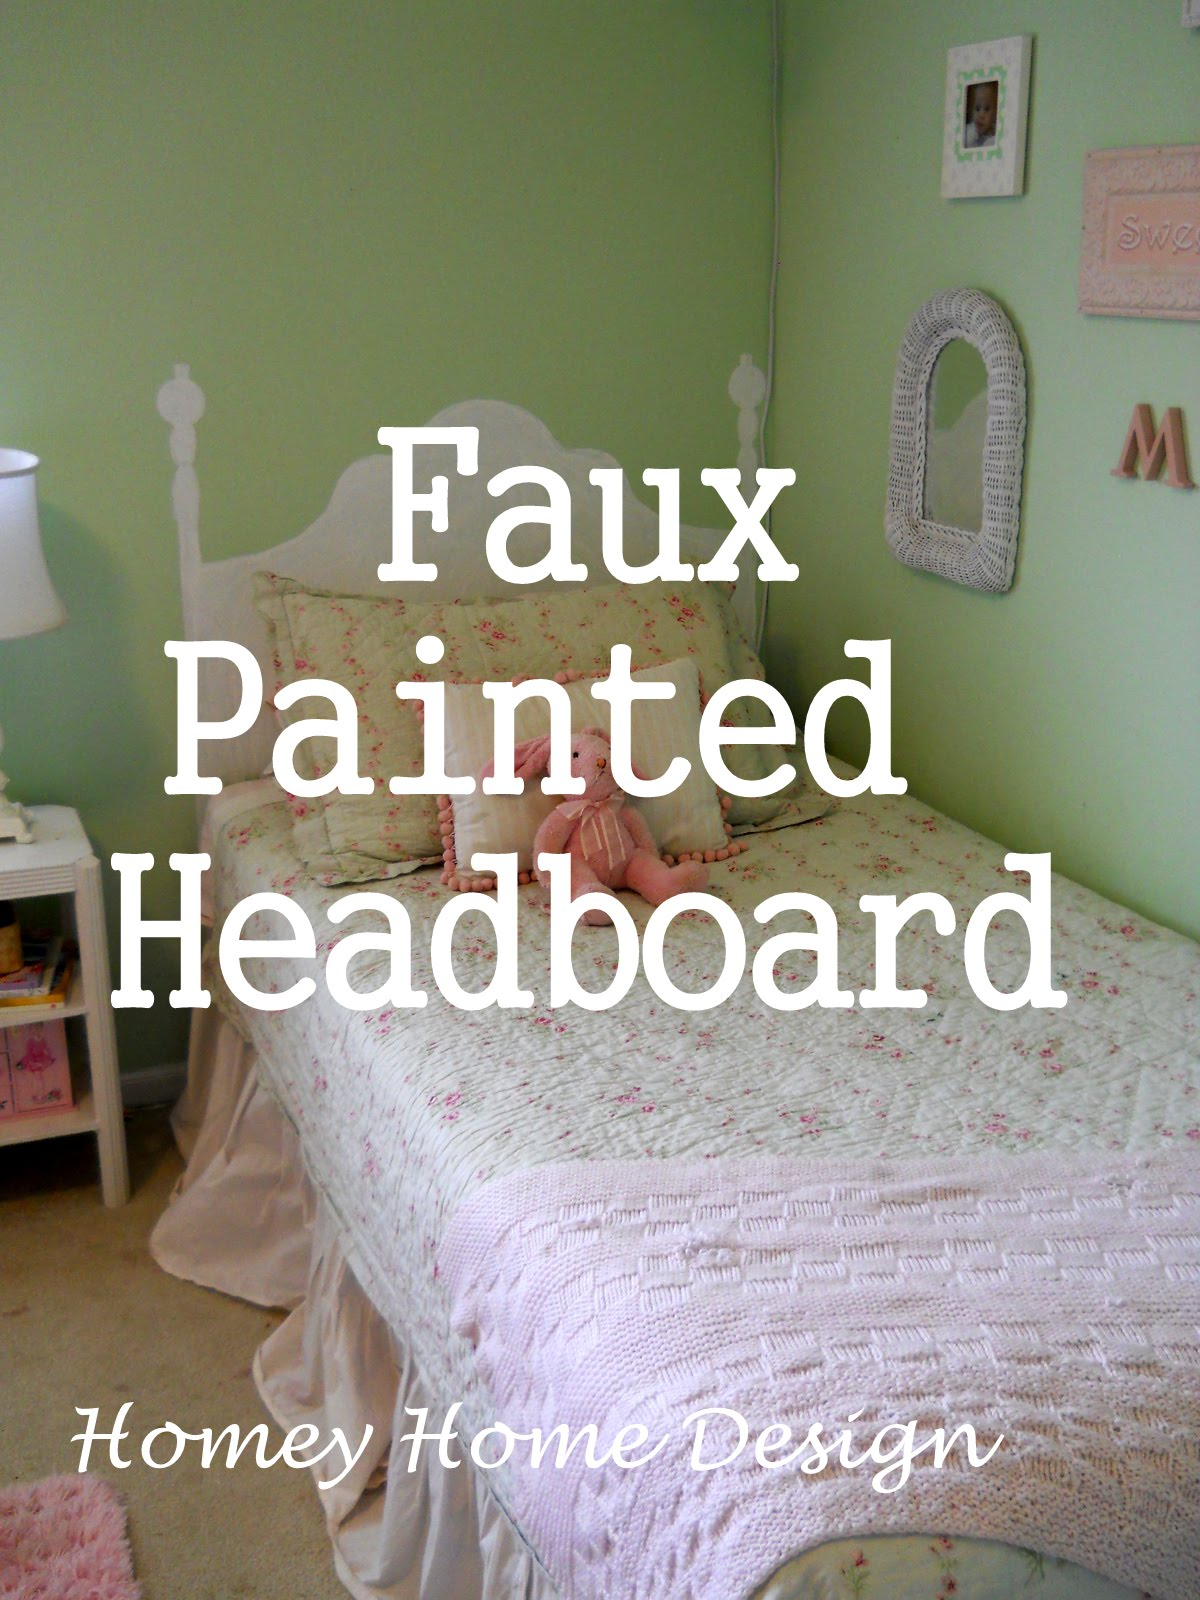 Painted Headboard Ideas Part - 21: It Was Really Cheap {$15.00} But When I Saw It I Knew I Could Paint A  Headboard For Even Cheaper! {Thanks For The Idea Sue!}